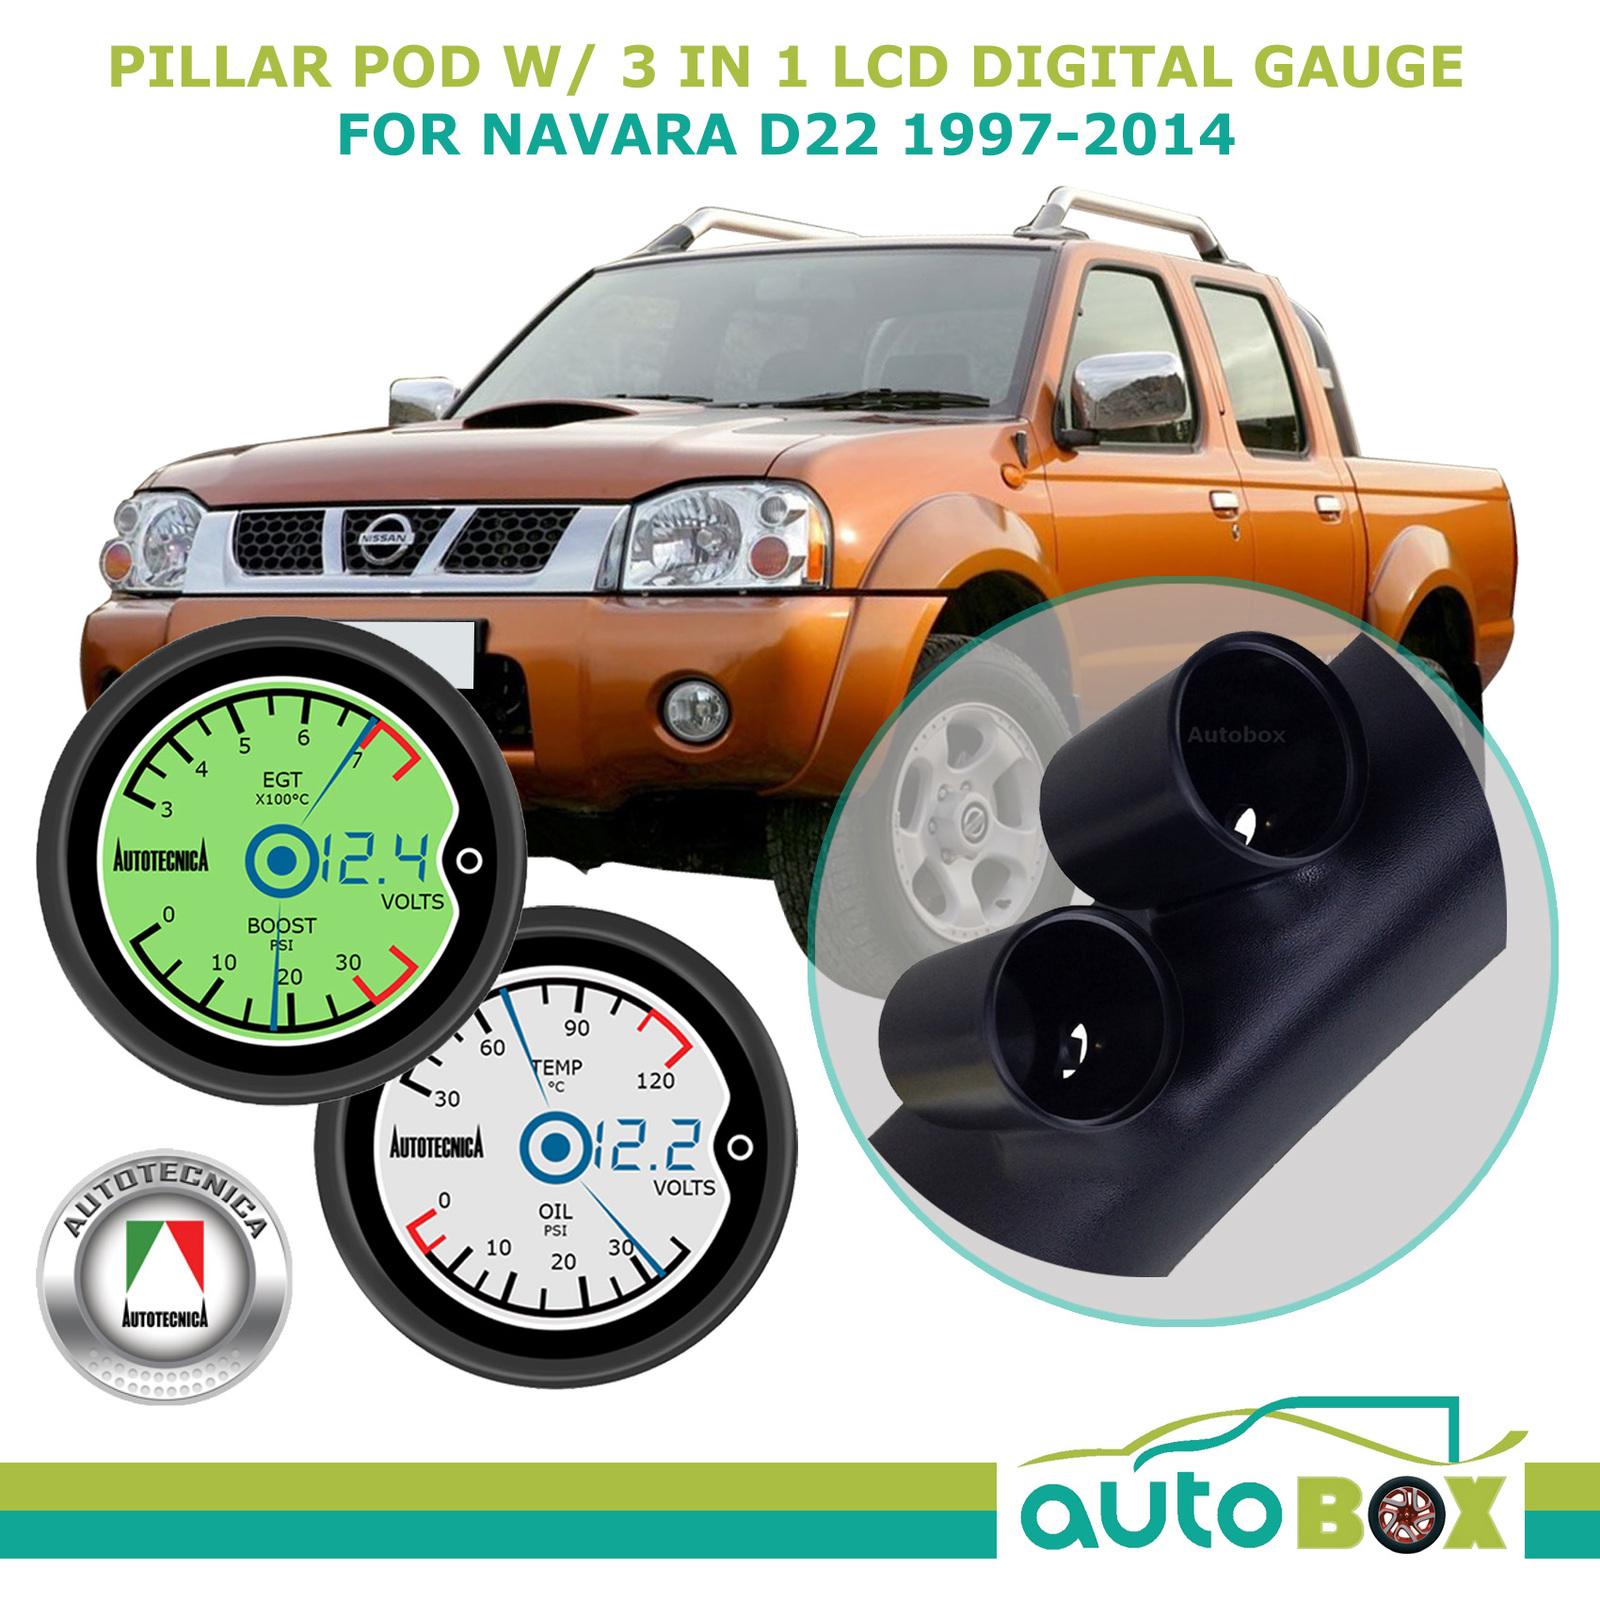 SAAS Pillar Pod w/ Autotecnica 3in1 LCD Gauge for Nissan Navara D22  1997-2014 | Autobox